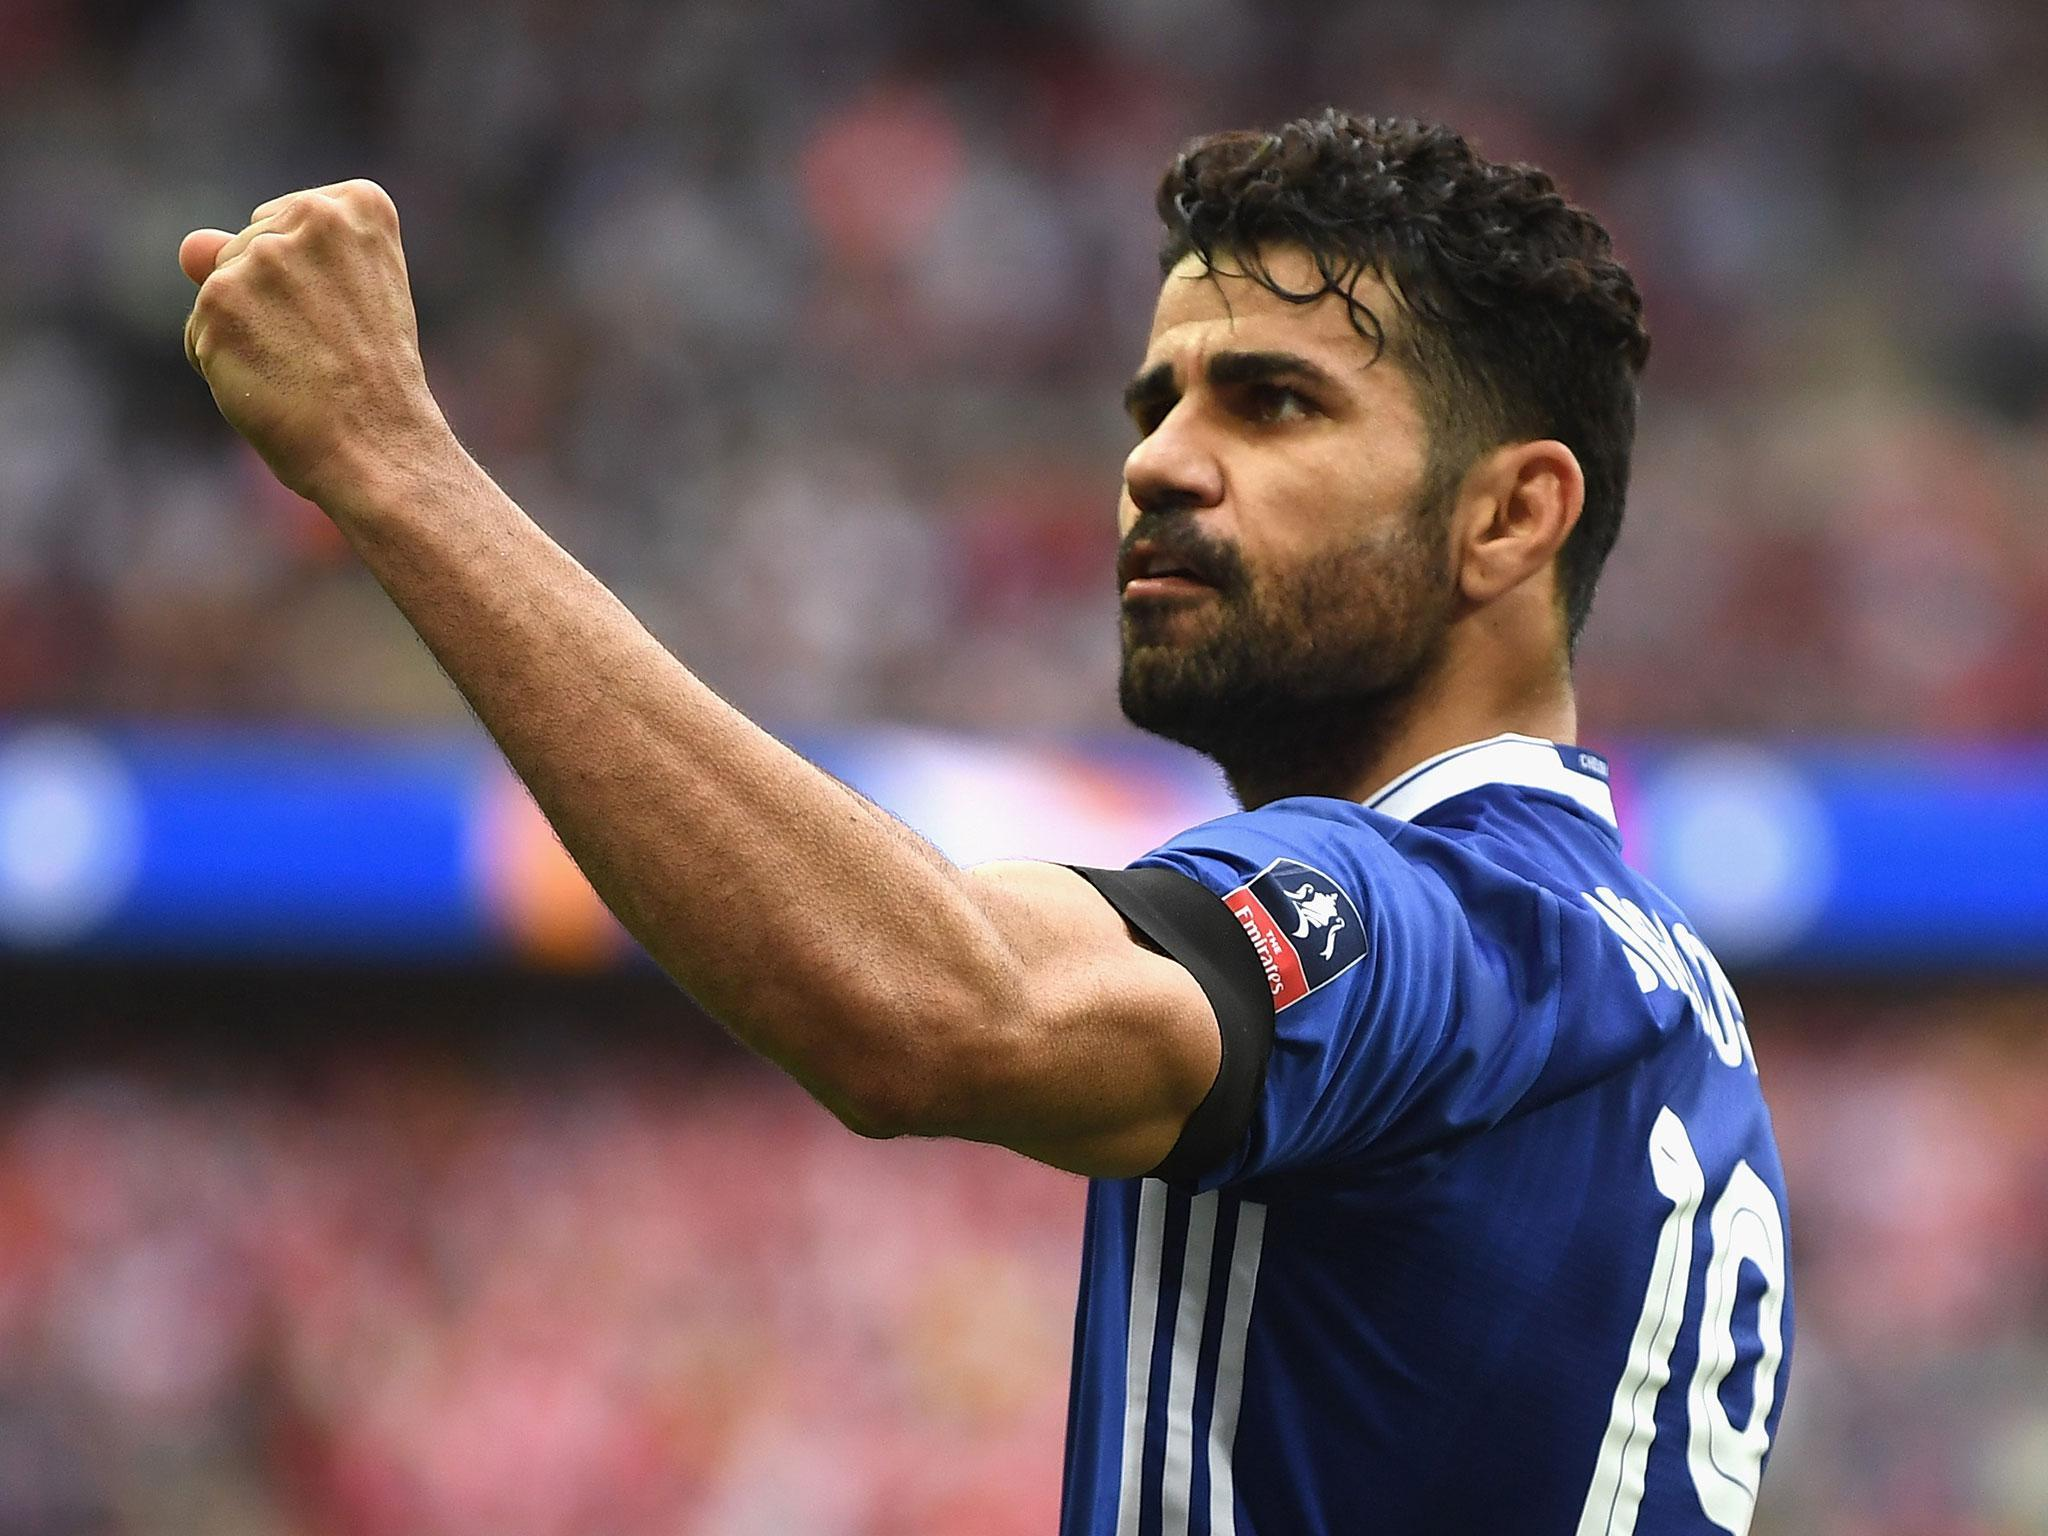 Chelsea want Diego Costa to end exile and make himself available